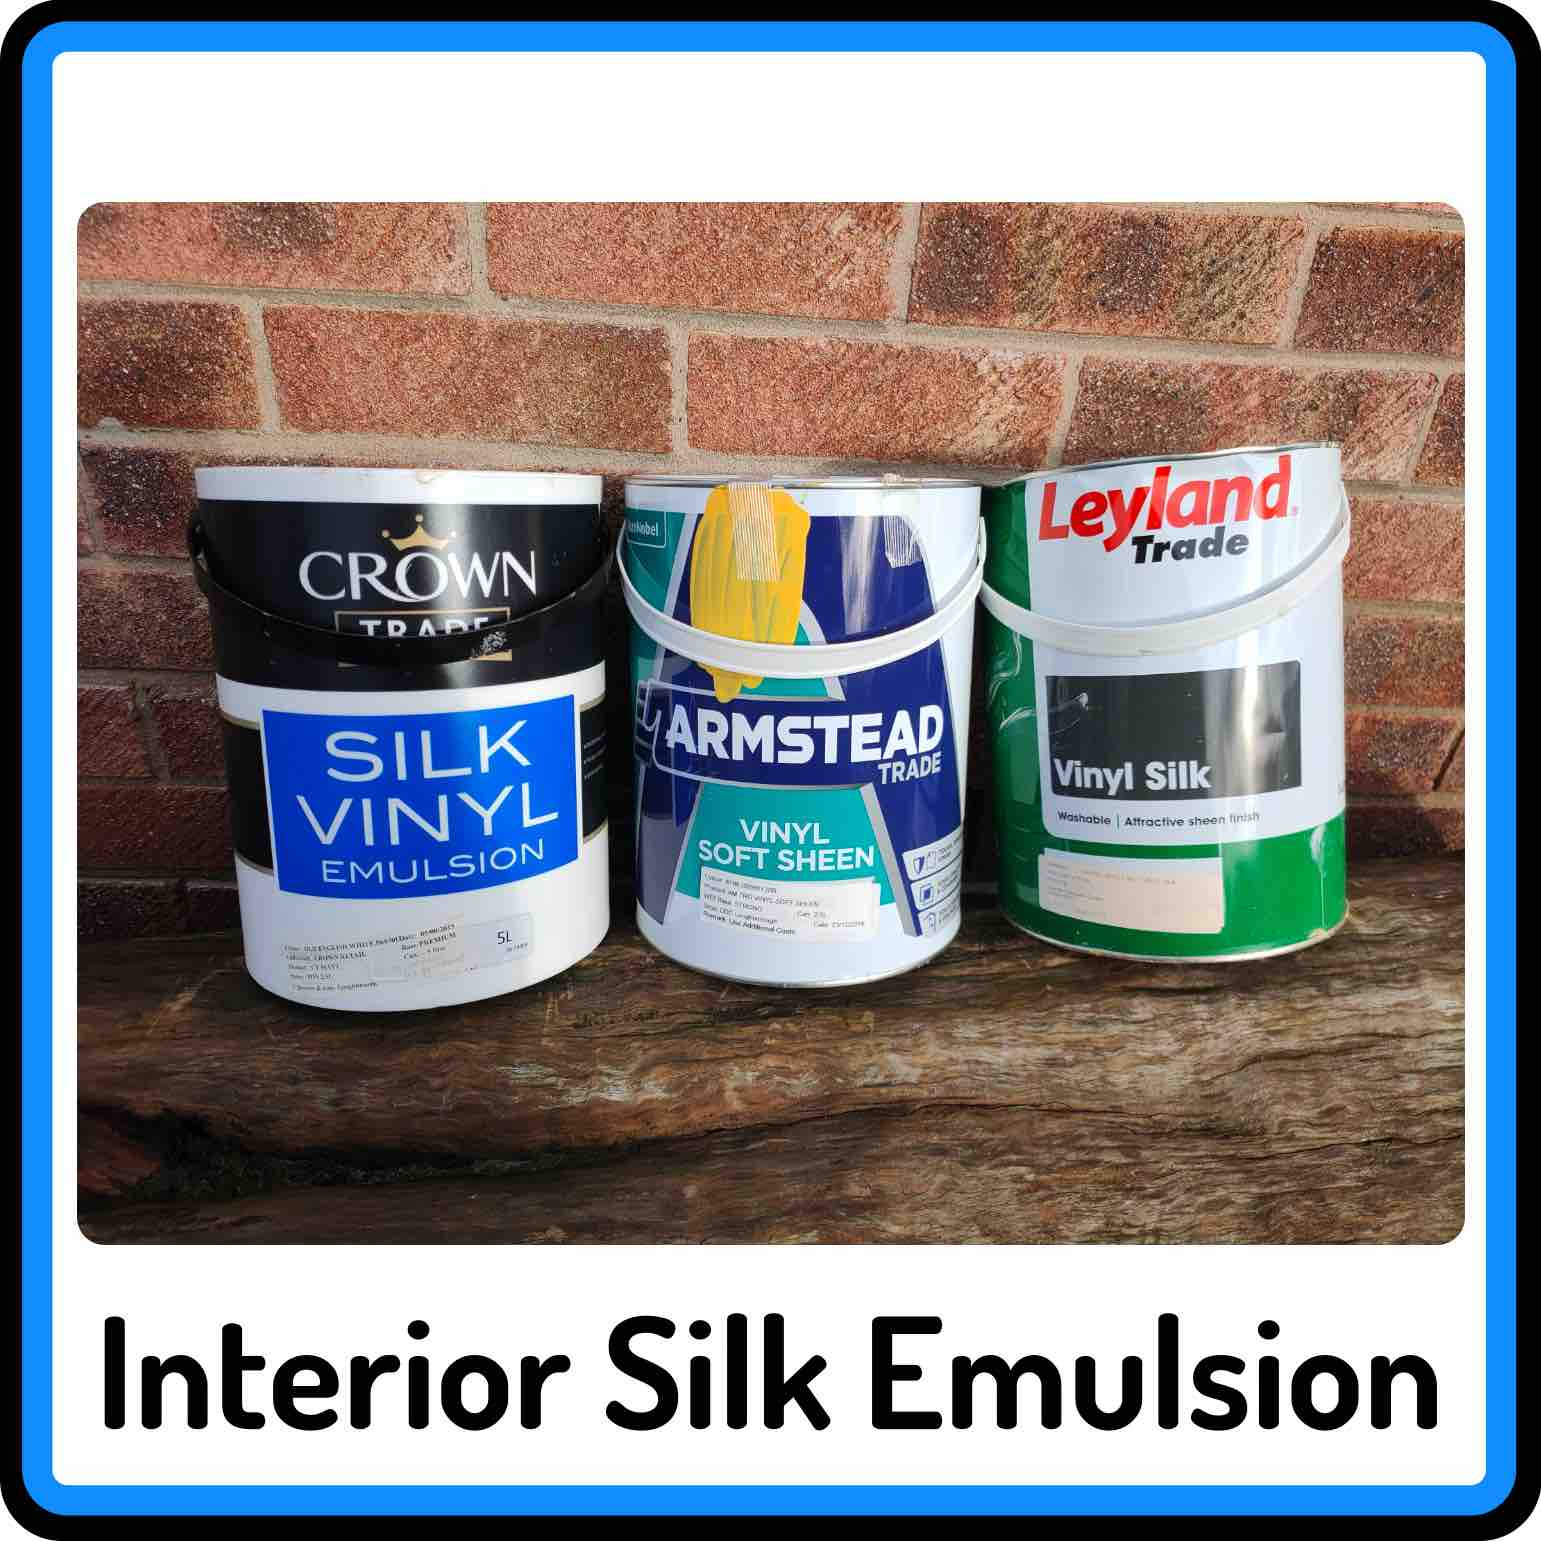 View Available Interior Silk Emulsion